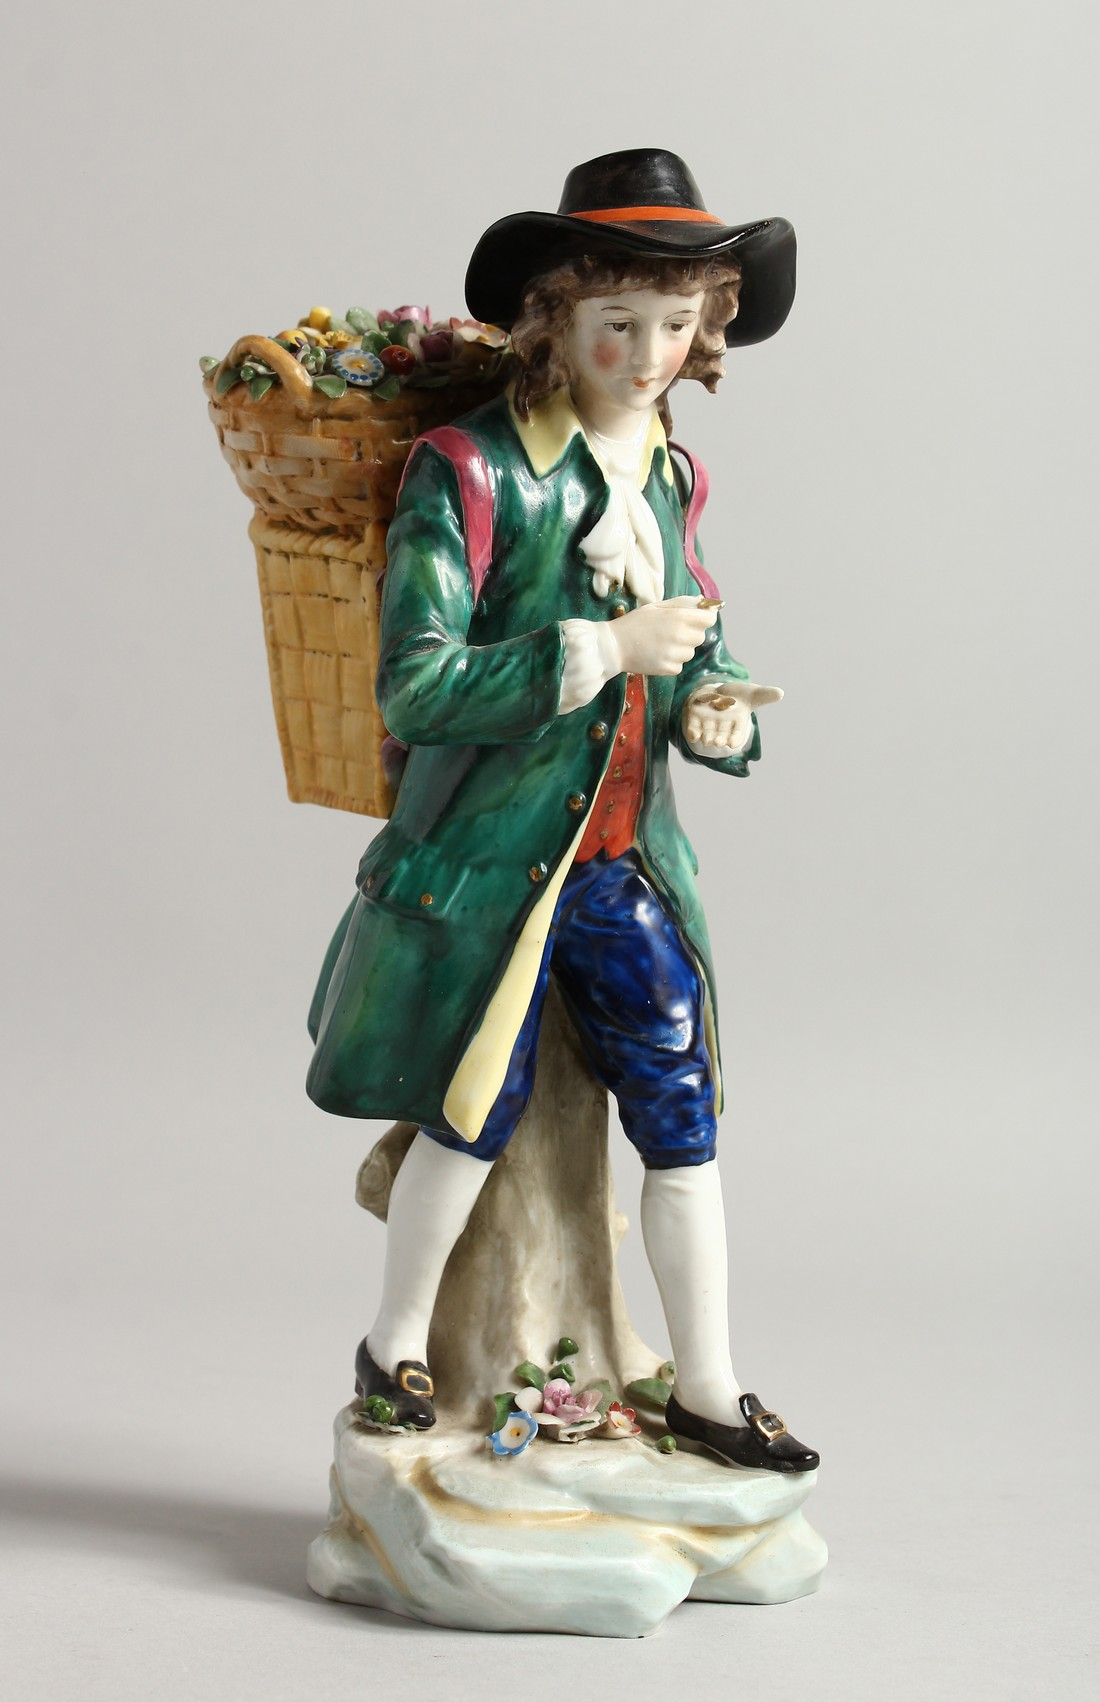 A SAMSON CHELSEA DERRY PORCELAIN FIGURE of a man, a basket of flowers on his back 9ins high.